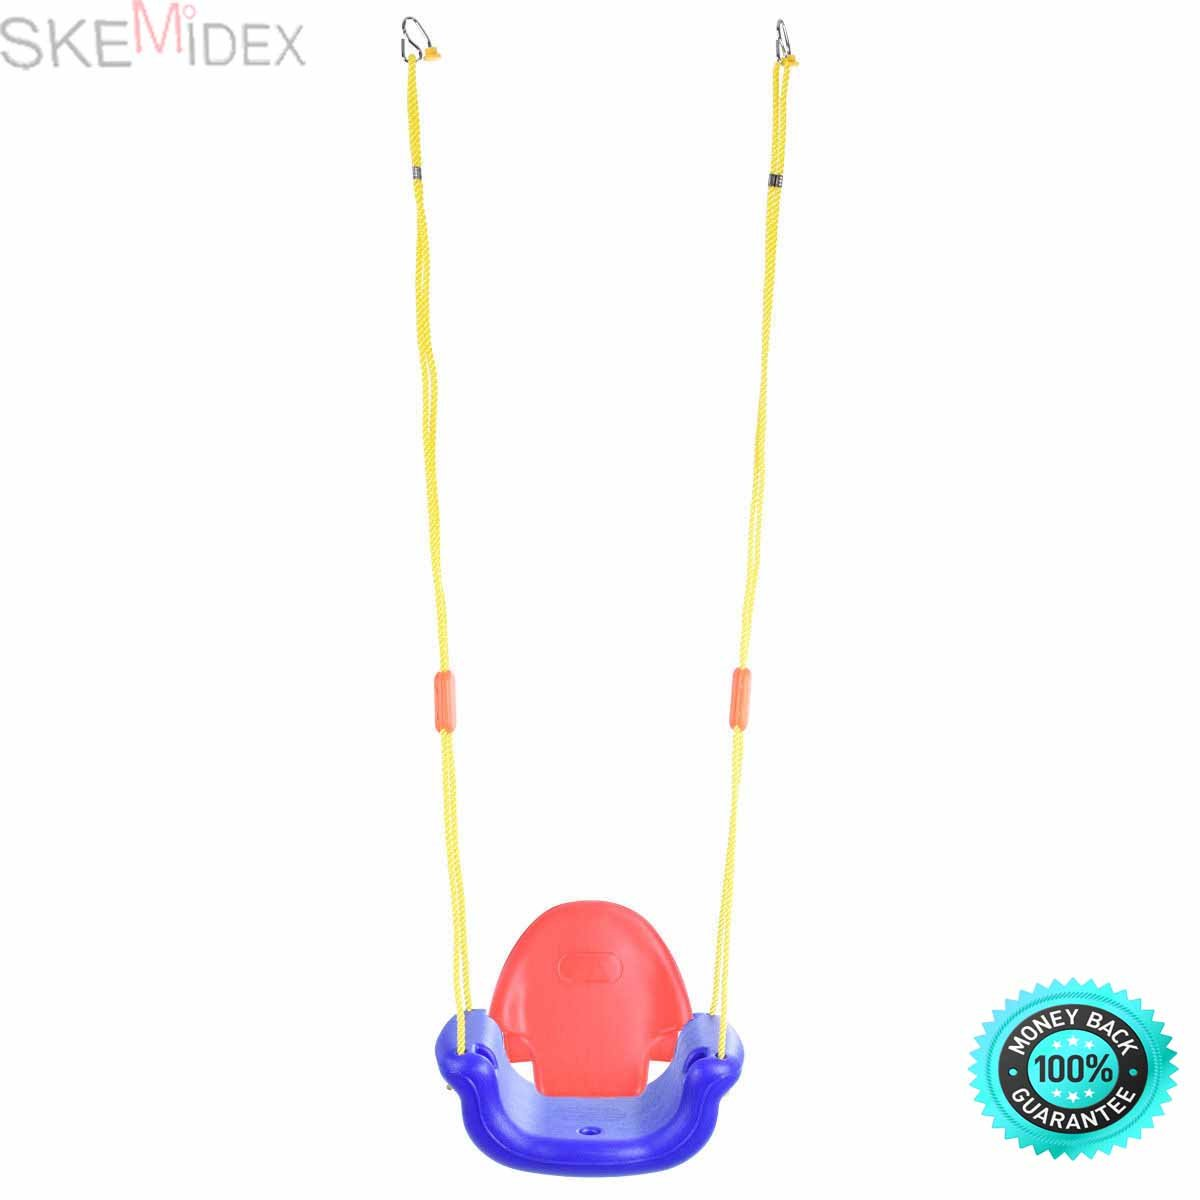 SKEMiDEX--- 3-in-1 Infant to Toddler Swing Set Secure Detachable Outdoor Play Patio Garden Brand news and Constructed of plastic, resistant Water and mold Easy to assemble, converted